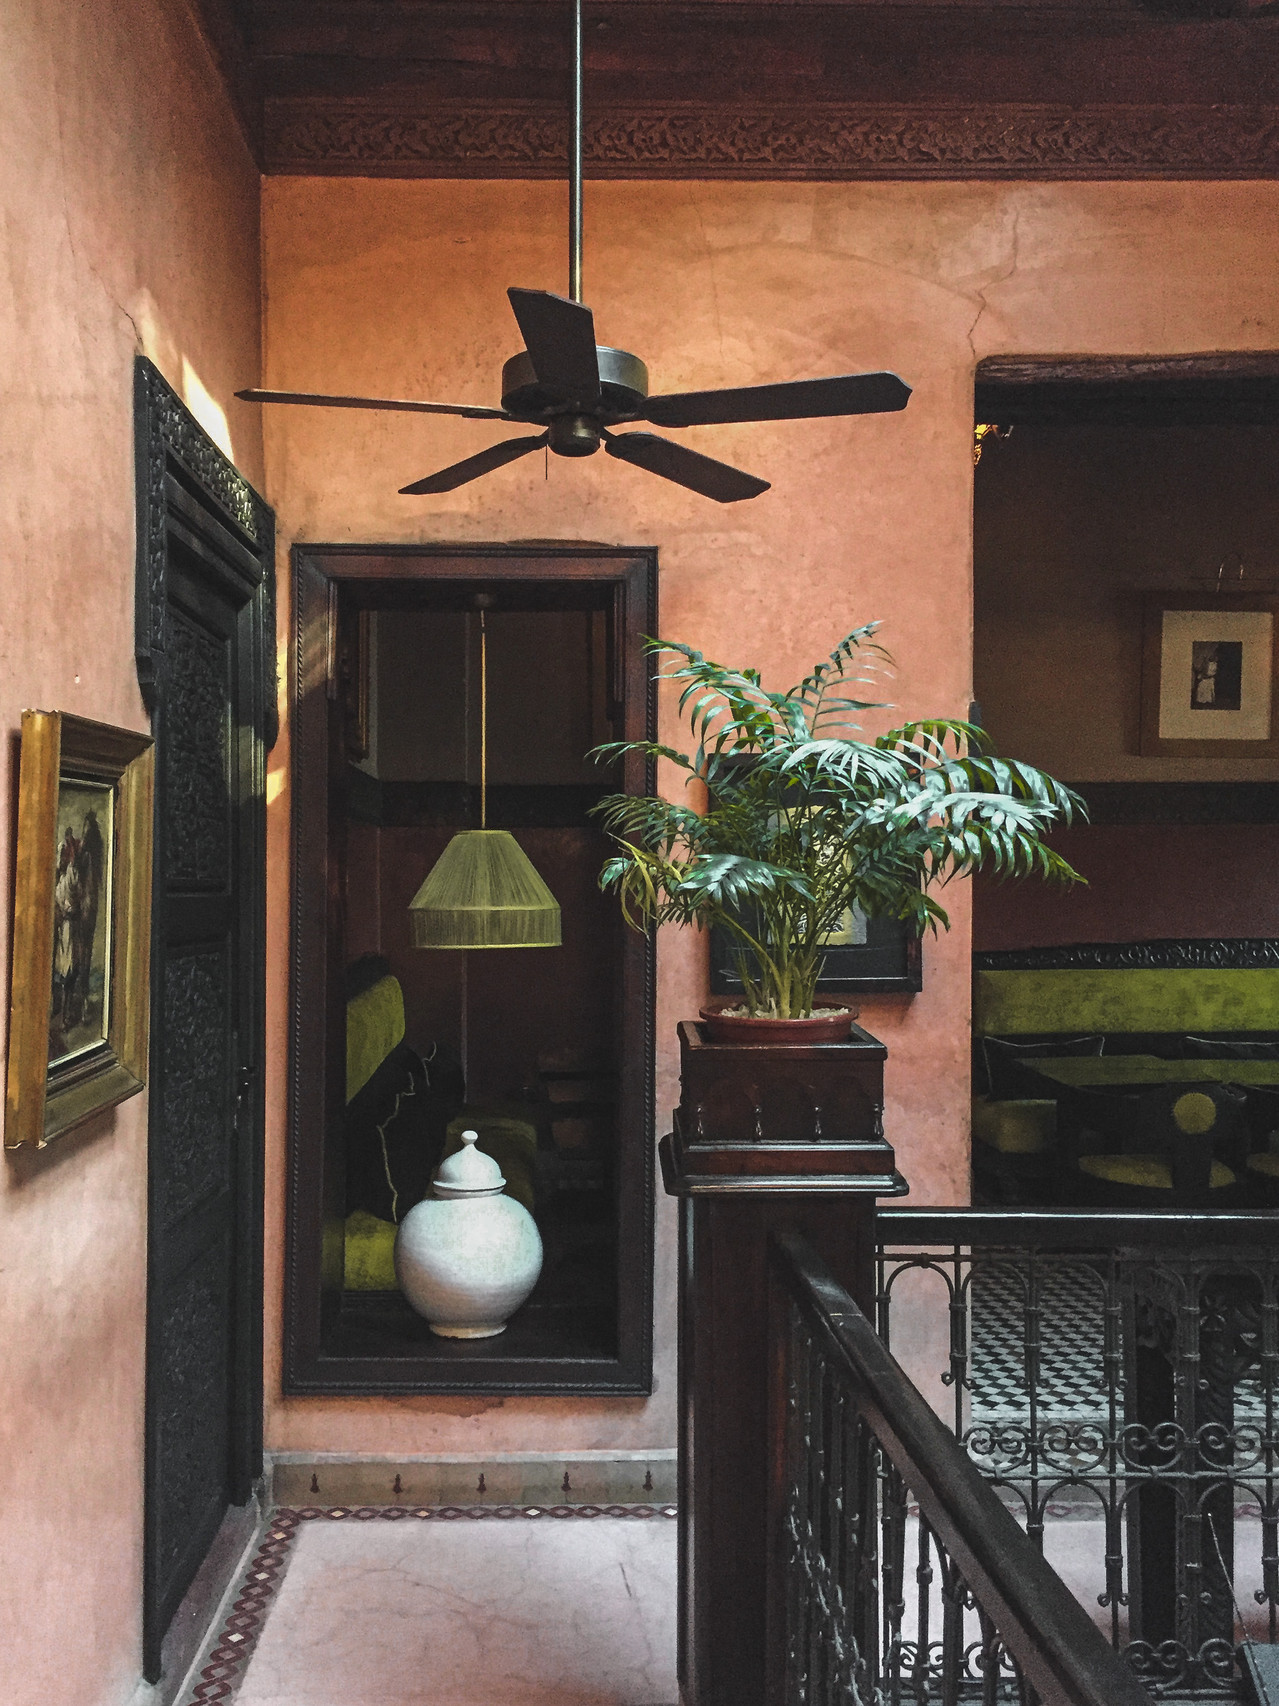 Coral walls, timber balustrades, Moroccan riad decor | RollingBear Travels